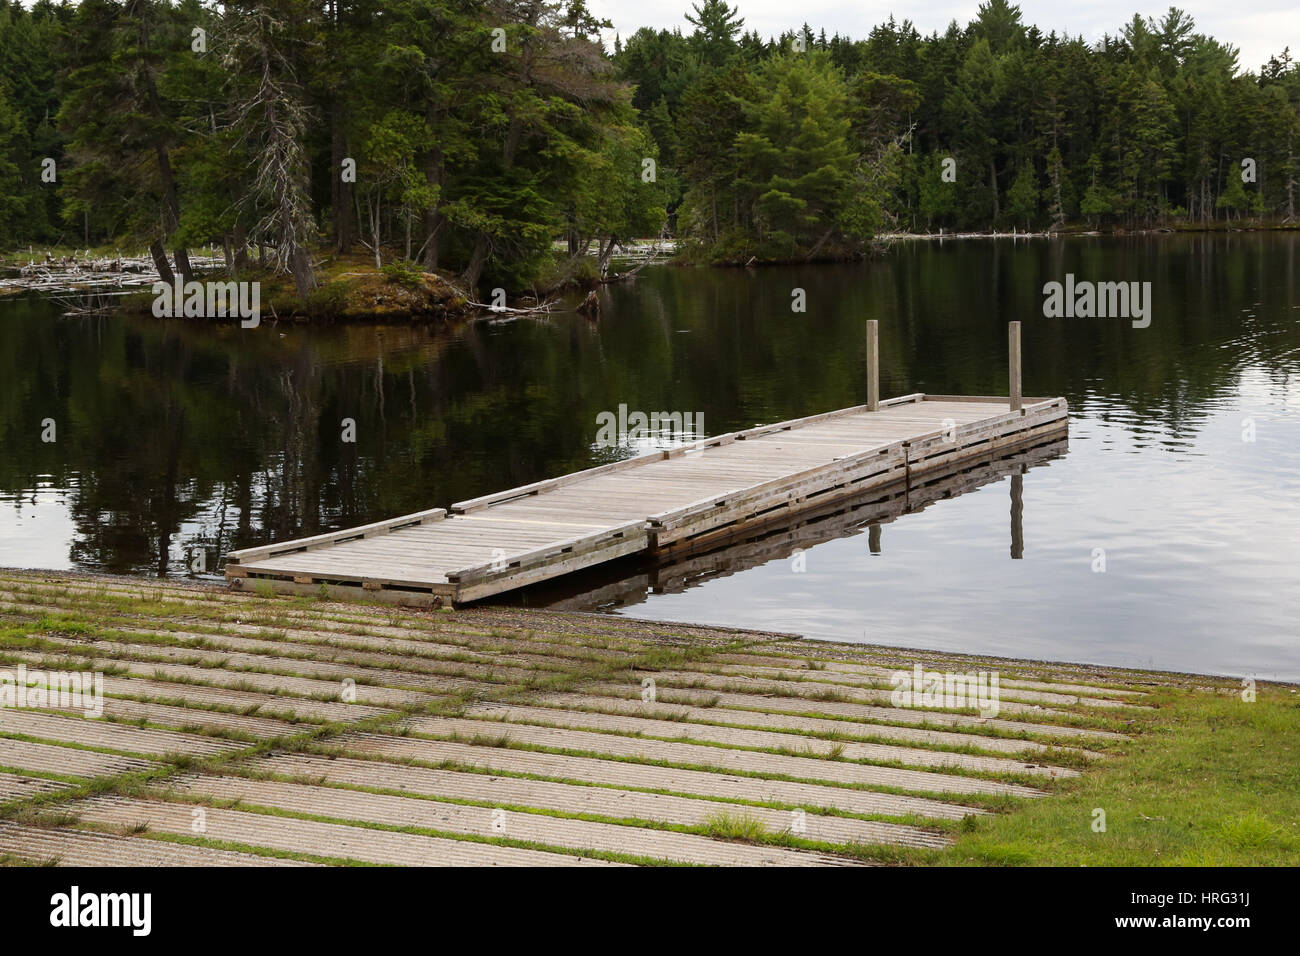 Boat Launching Ramp and Float at Lily Bay State Park on the eastern shore of magnificent Moosehead Lake - Stock Image